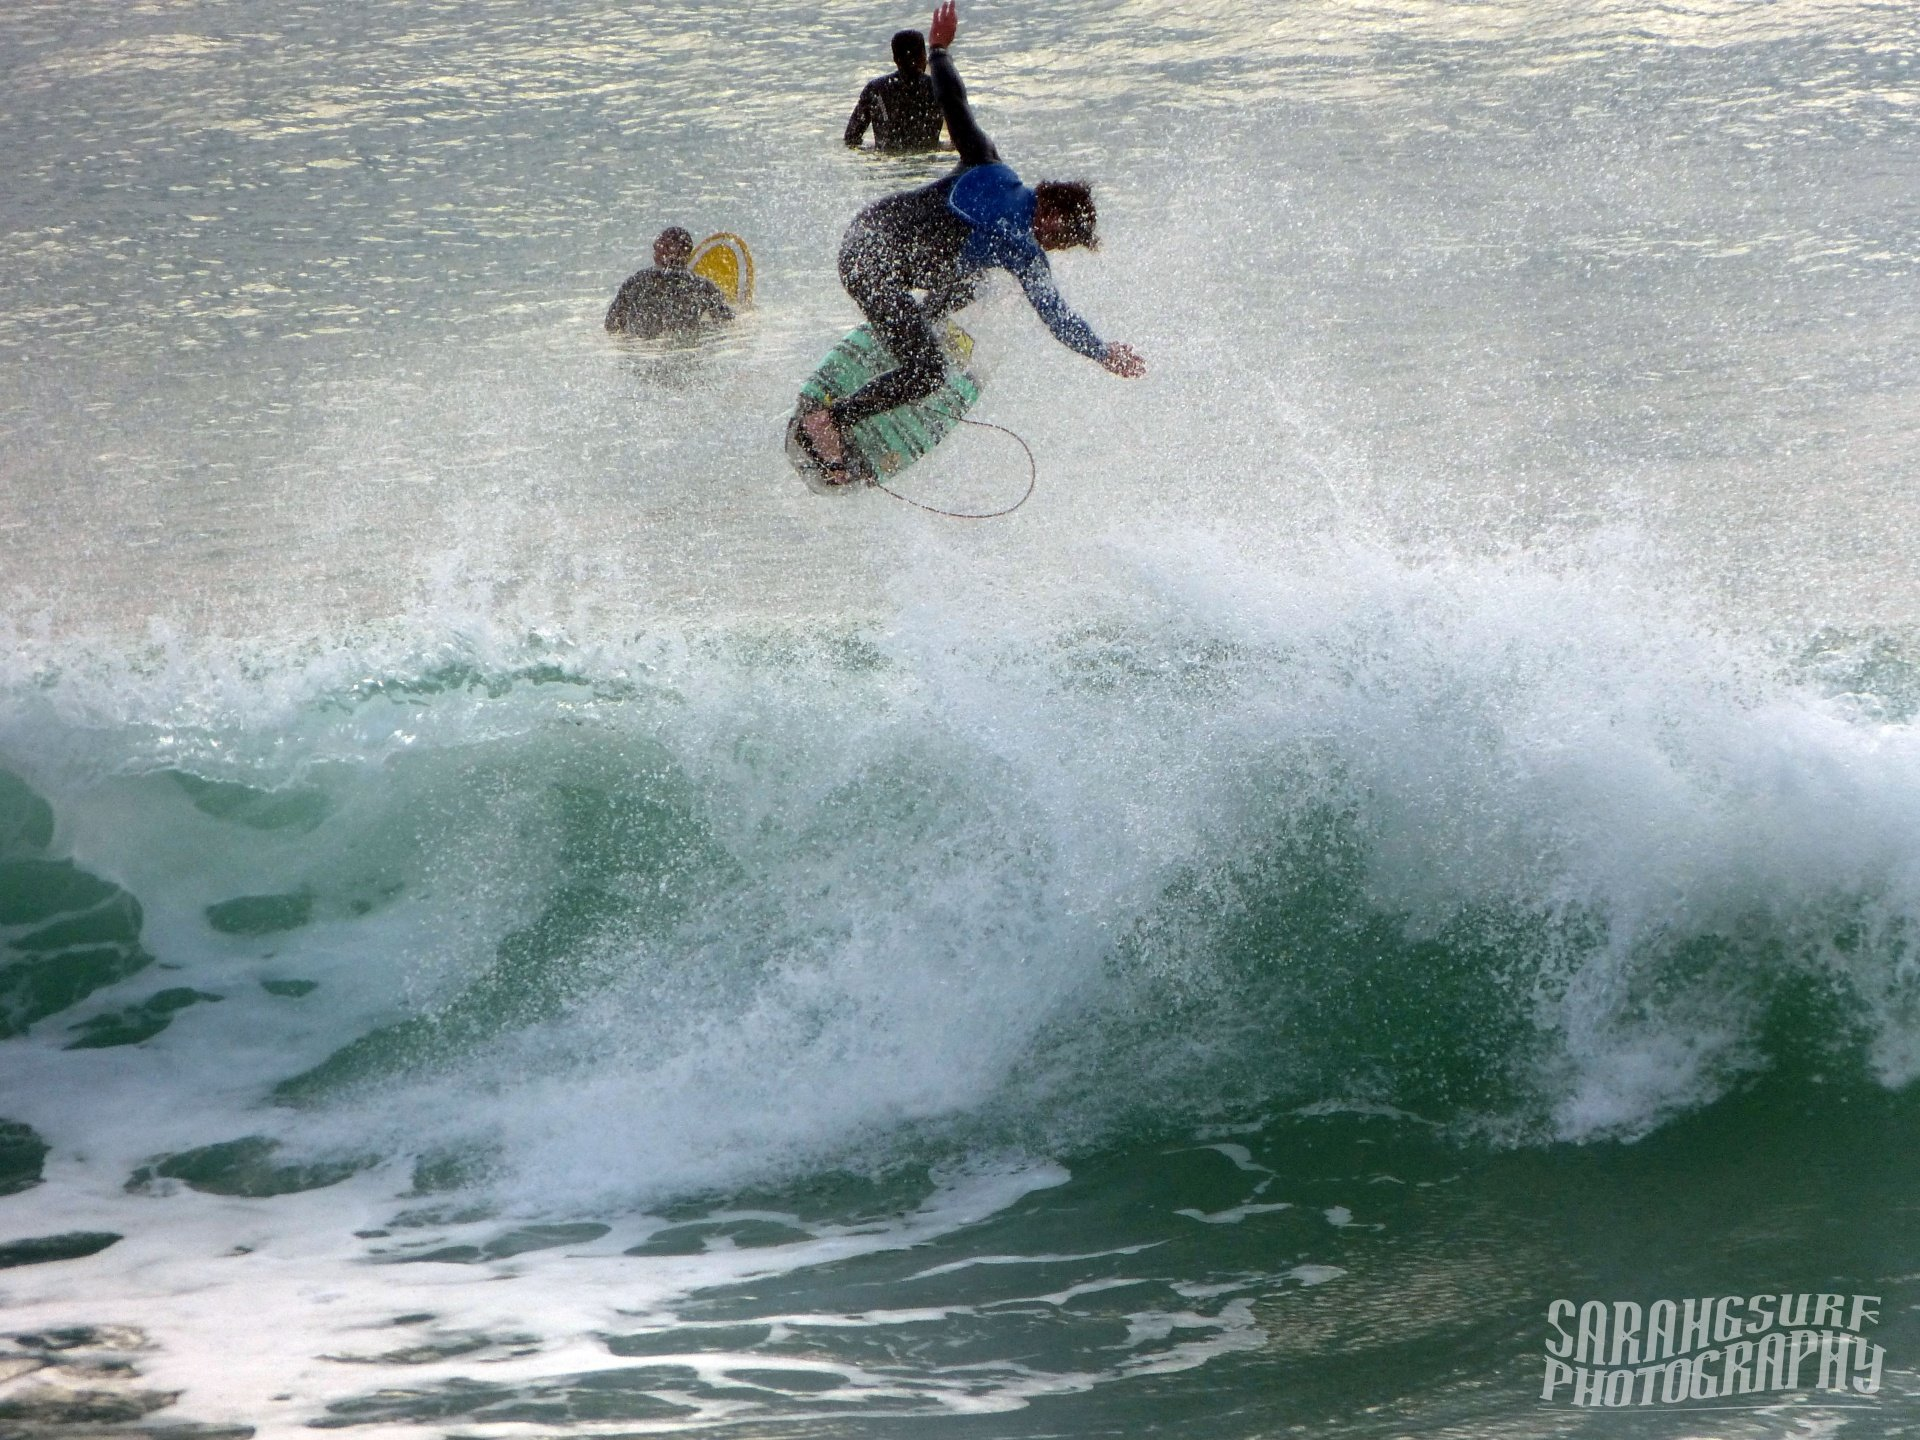 SARAHG SURF PHOTOGRAPHY's photo of Newquay - Fistral South